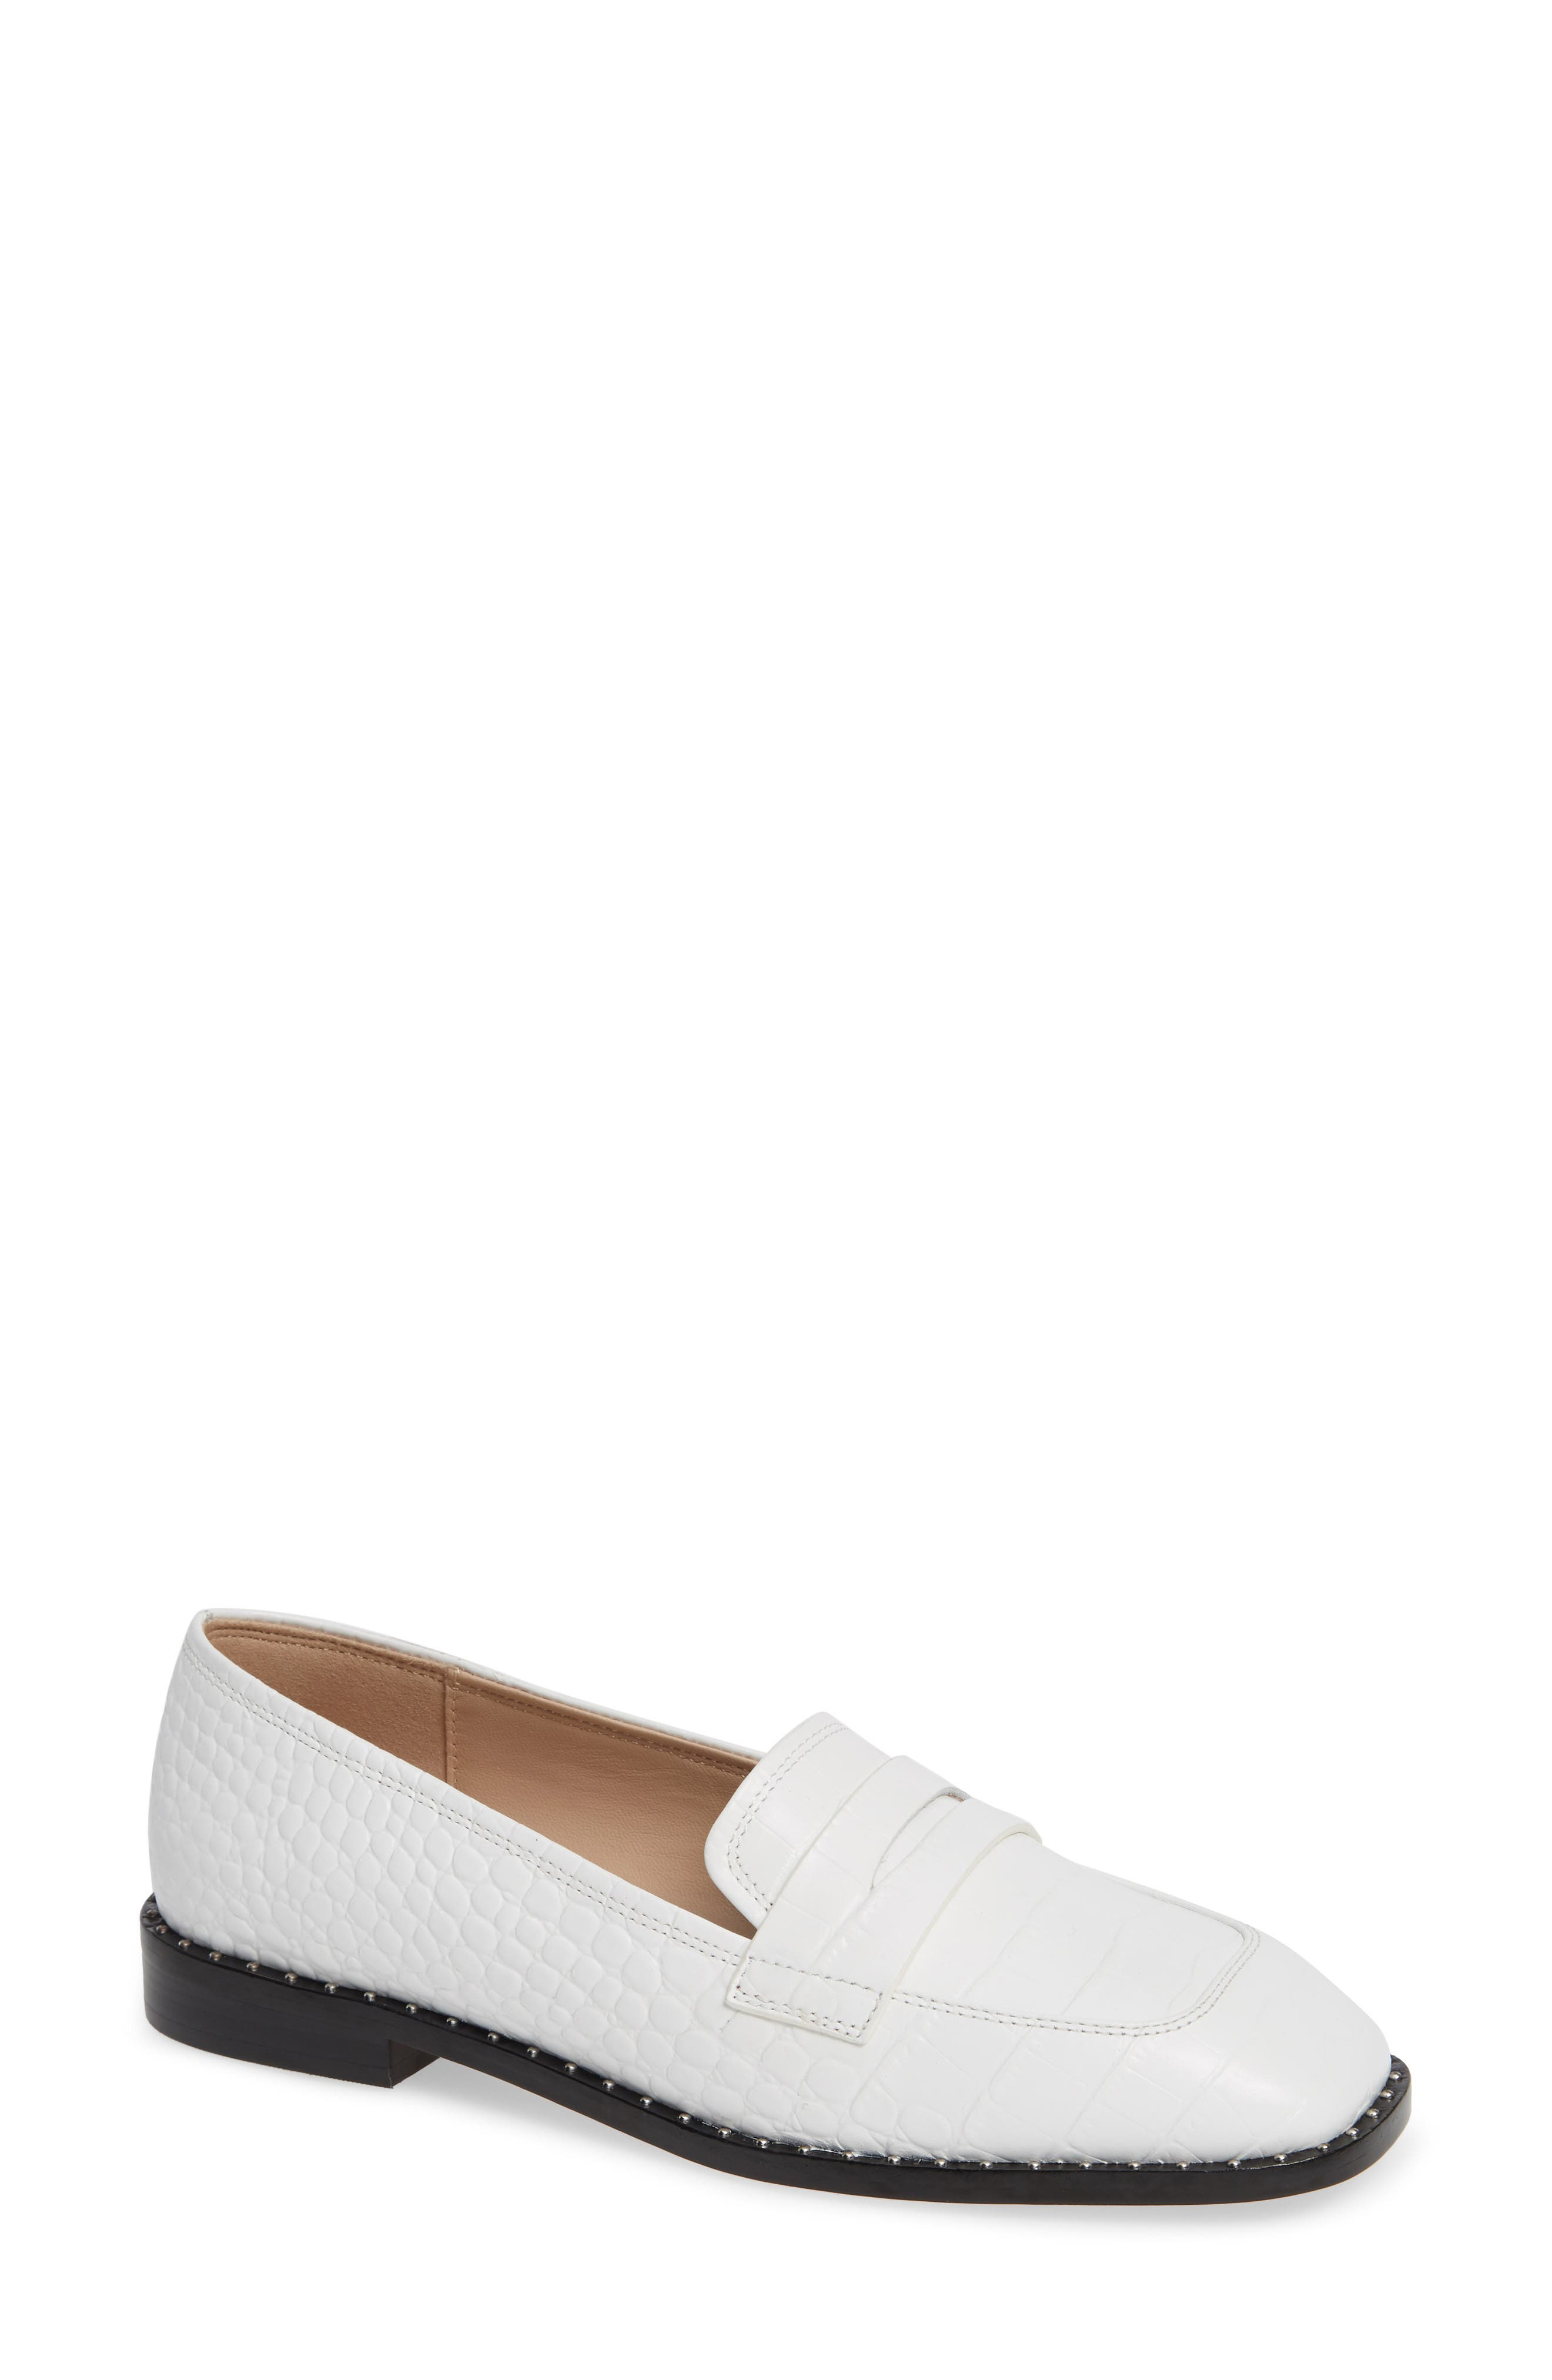 Amado Loafer,                             Main thumbnail 1, color,                             WHITE EMBOSSED CROCO LEATHER